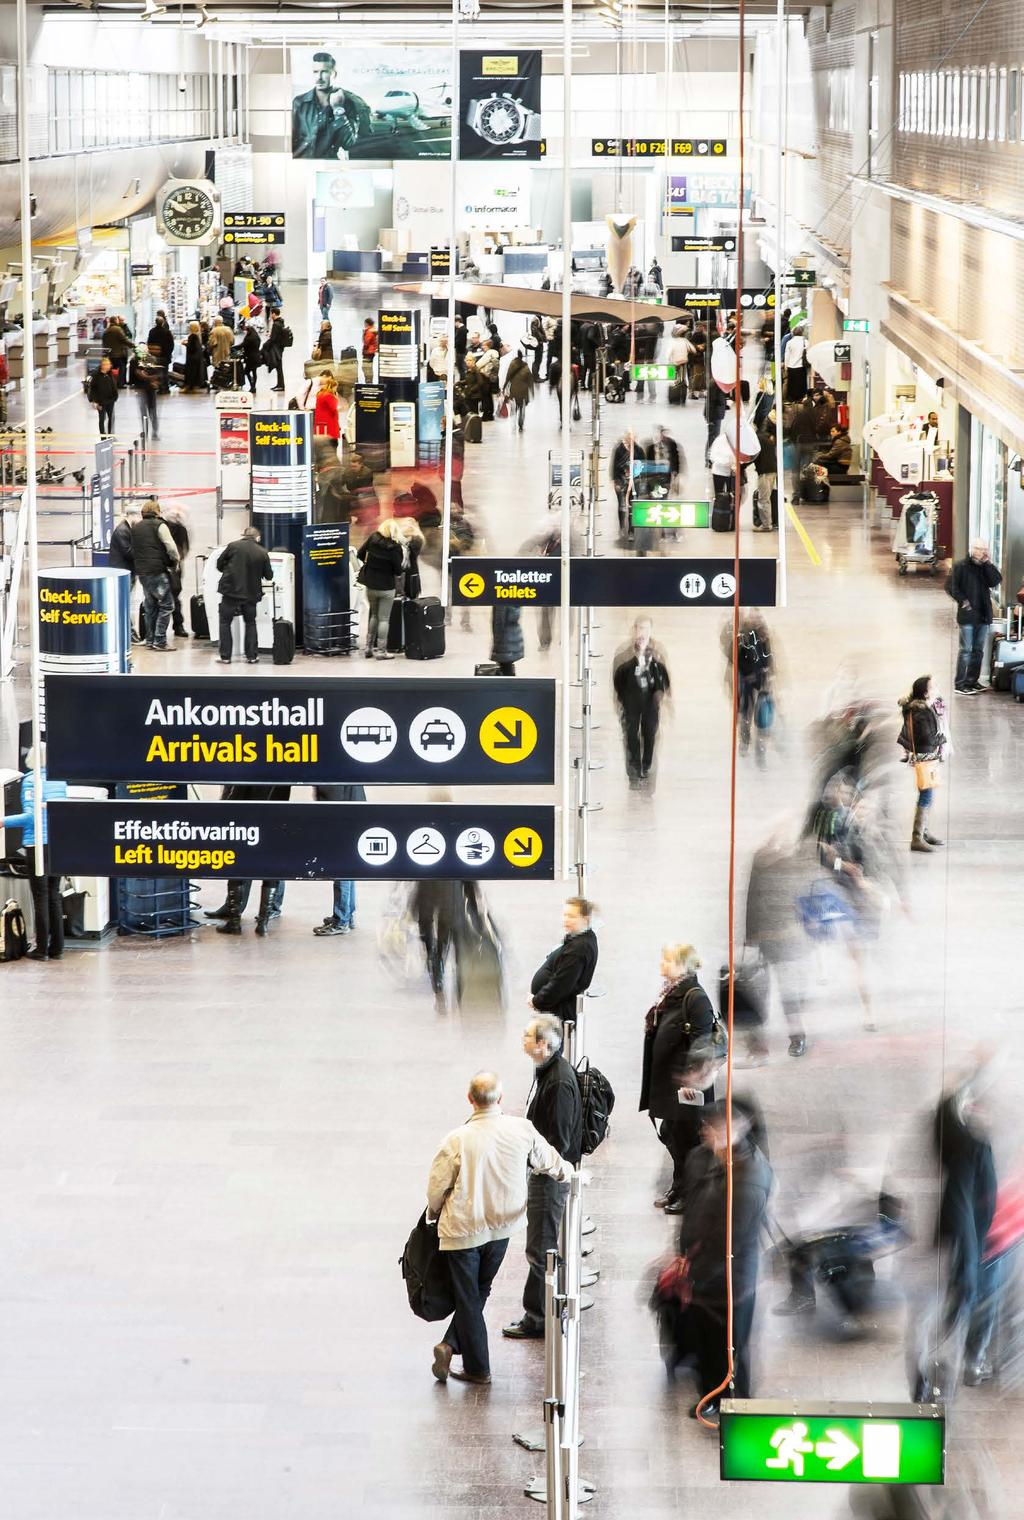 Airport Advertising Airports are positively charged environments that signal exclusivity, excitement and expectations, and the majority of the travelers are receptive to change and belongs to a